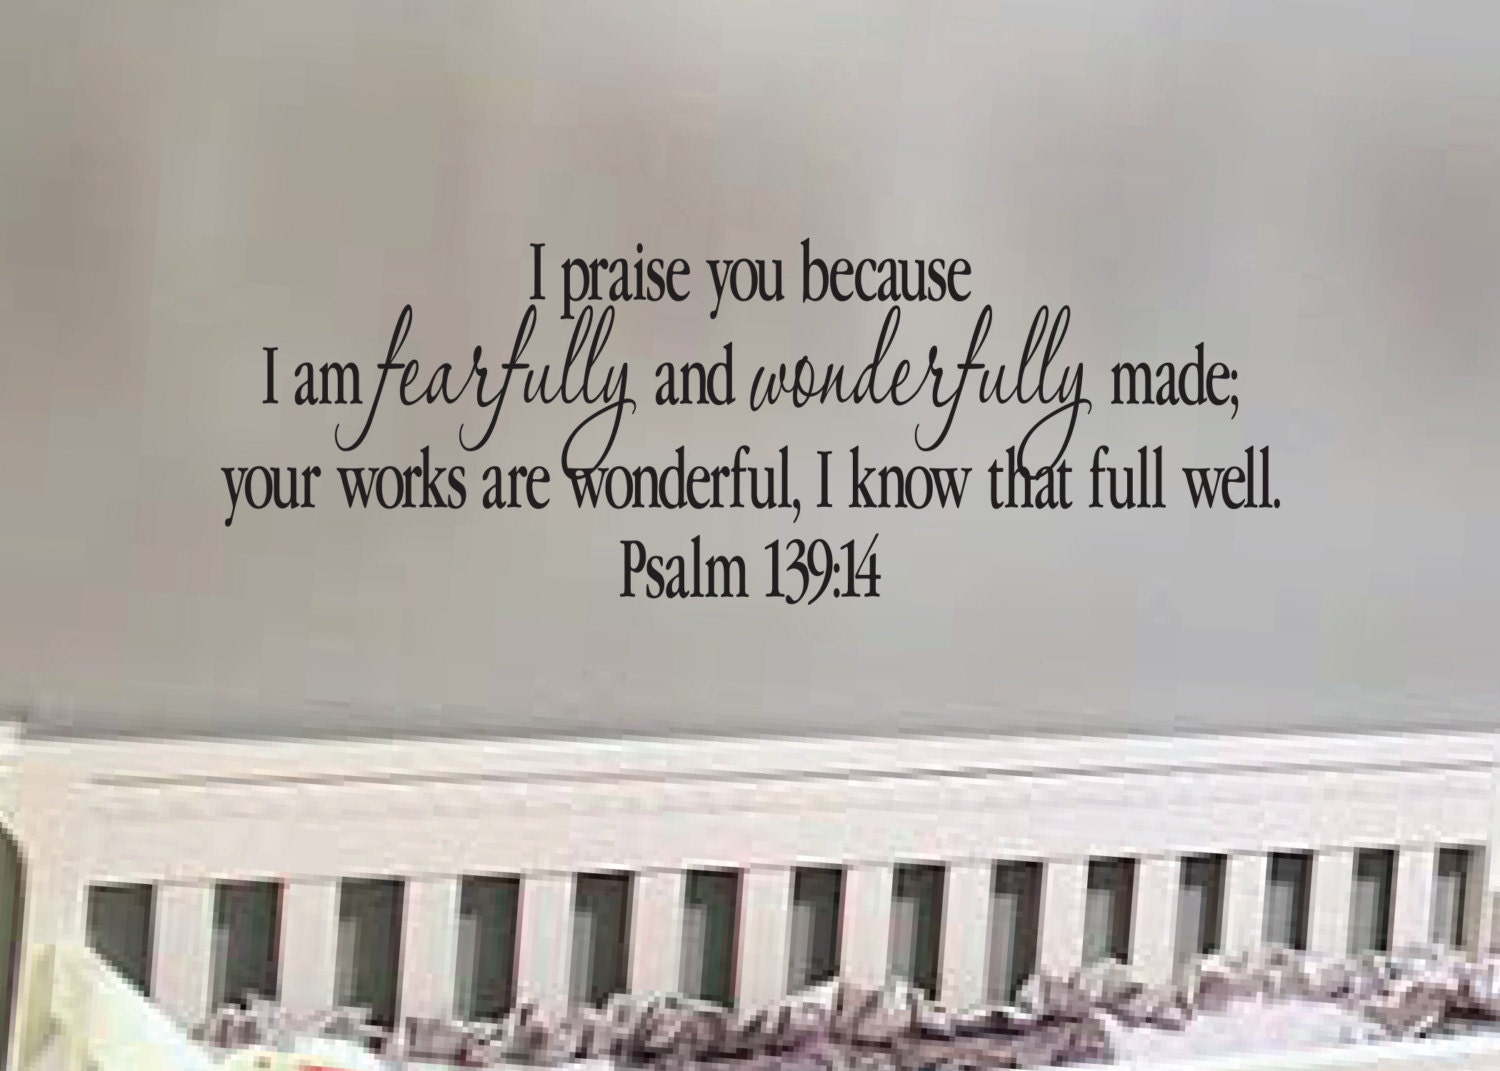 psalm 13914 praise you because i am fearfully and wonderfully